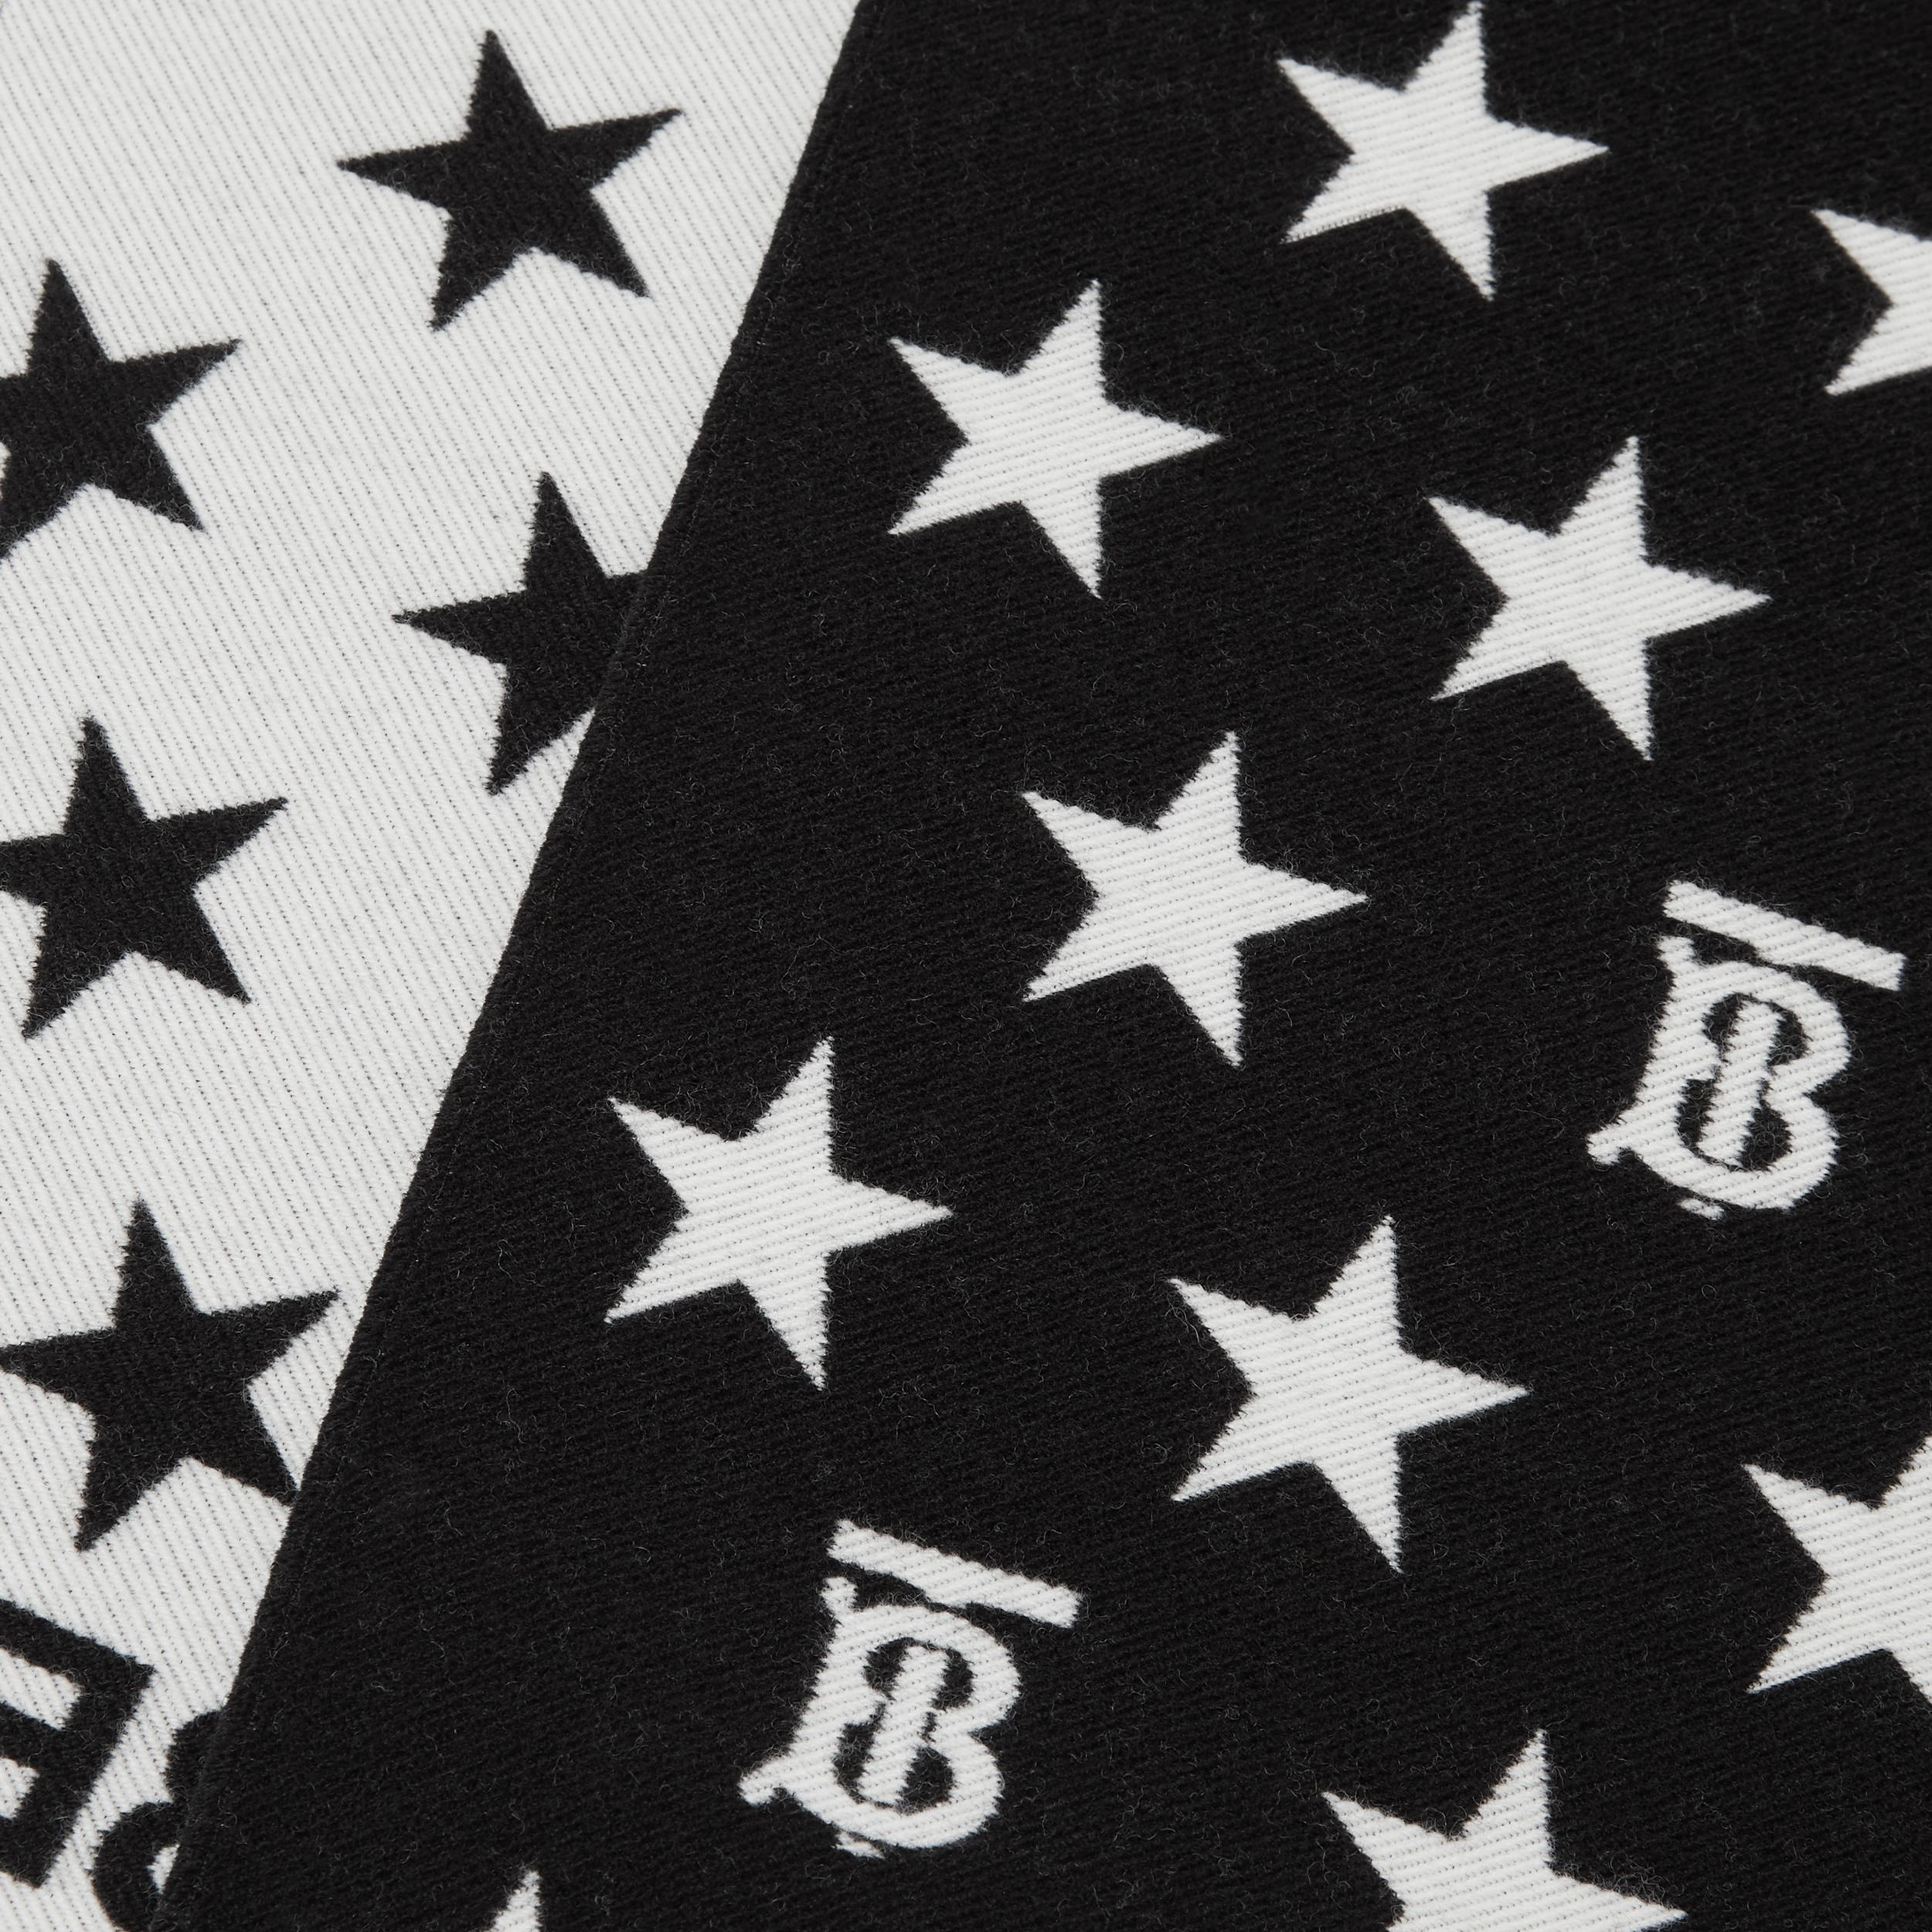 Star and Monogram Motif Wool Cotton Jacquard Scarf in Black - Children | Burberry - 2